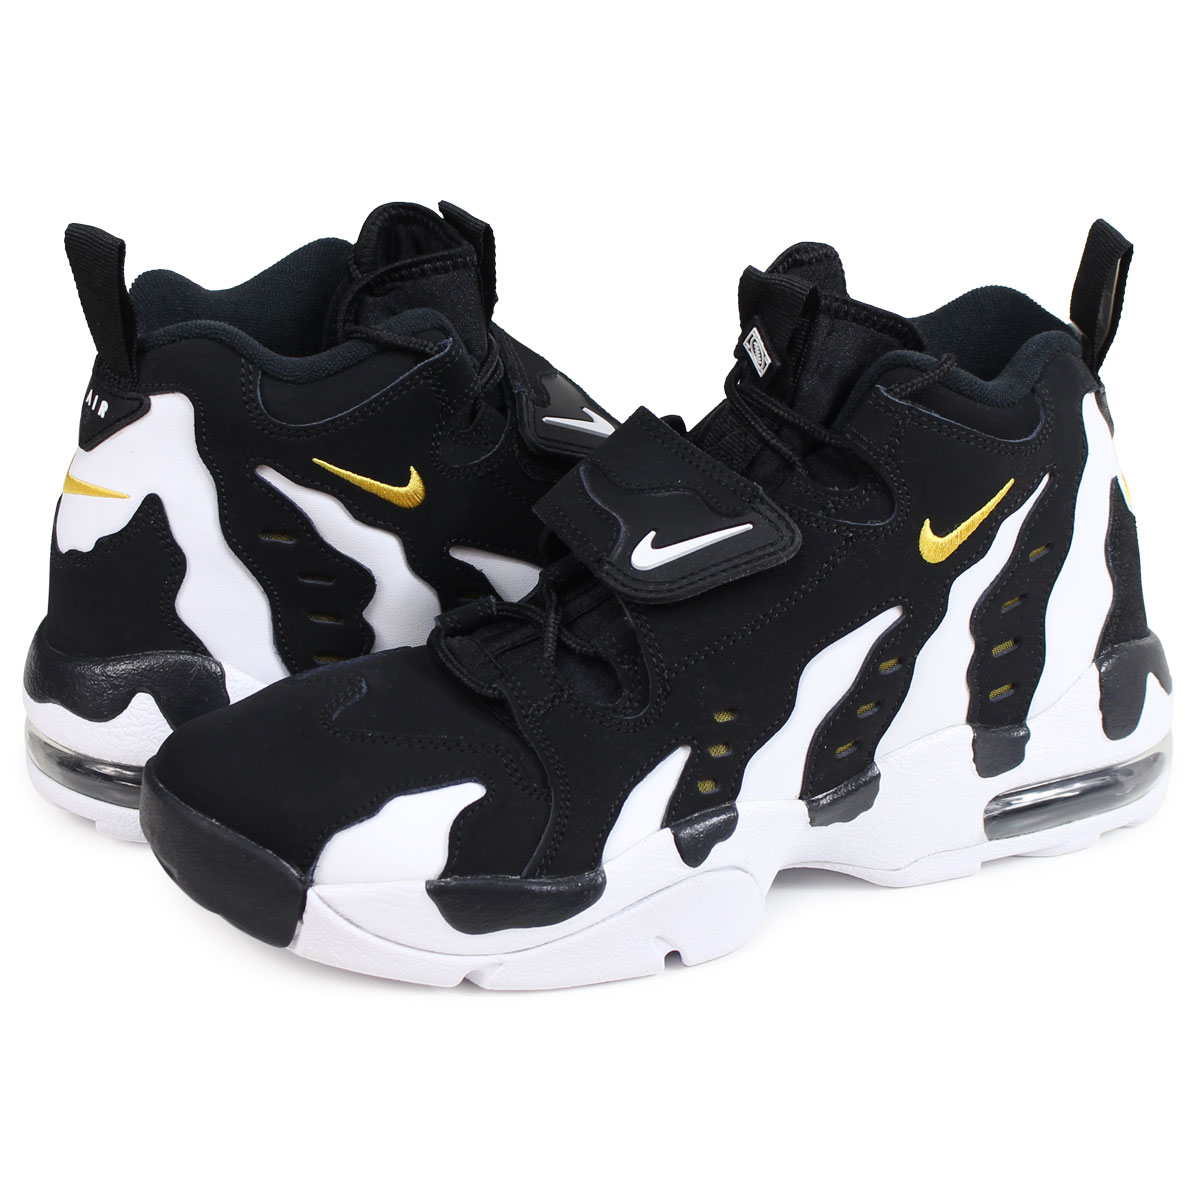 27a3c79d37e6 Nike NIKE air DT max 96 sneakers men AIR DT MAX 96 black 316